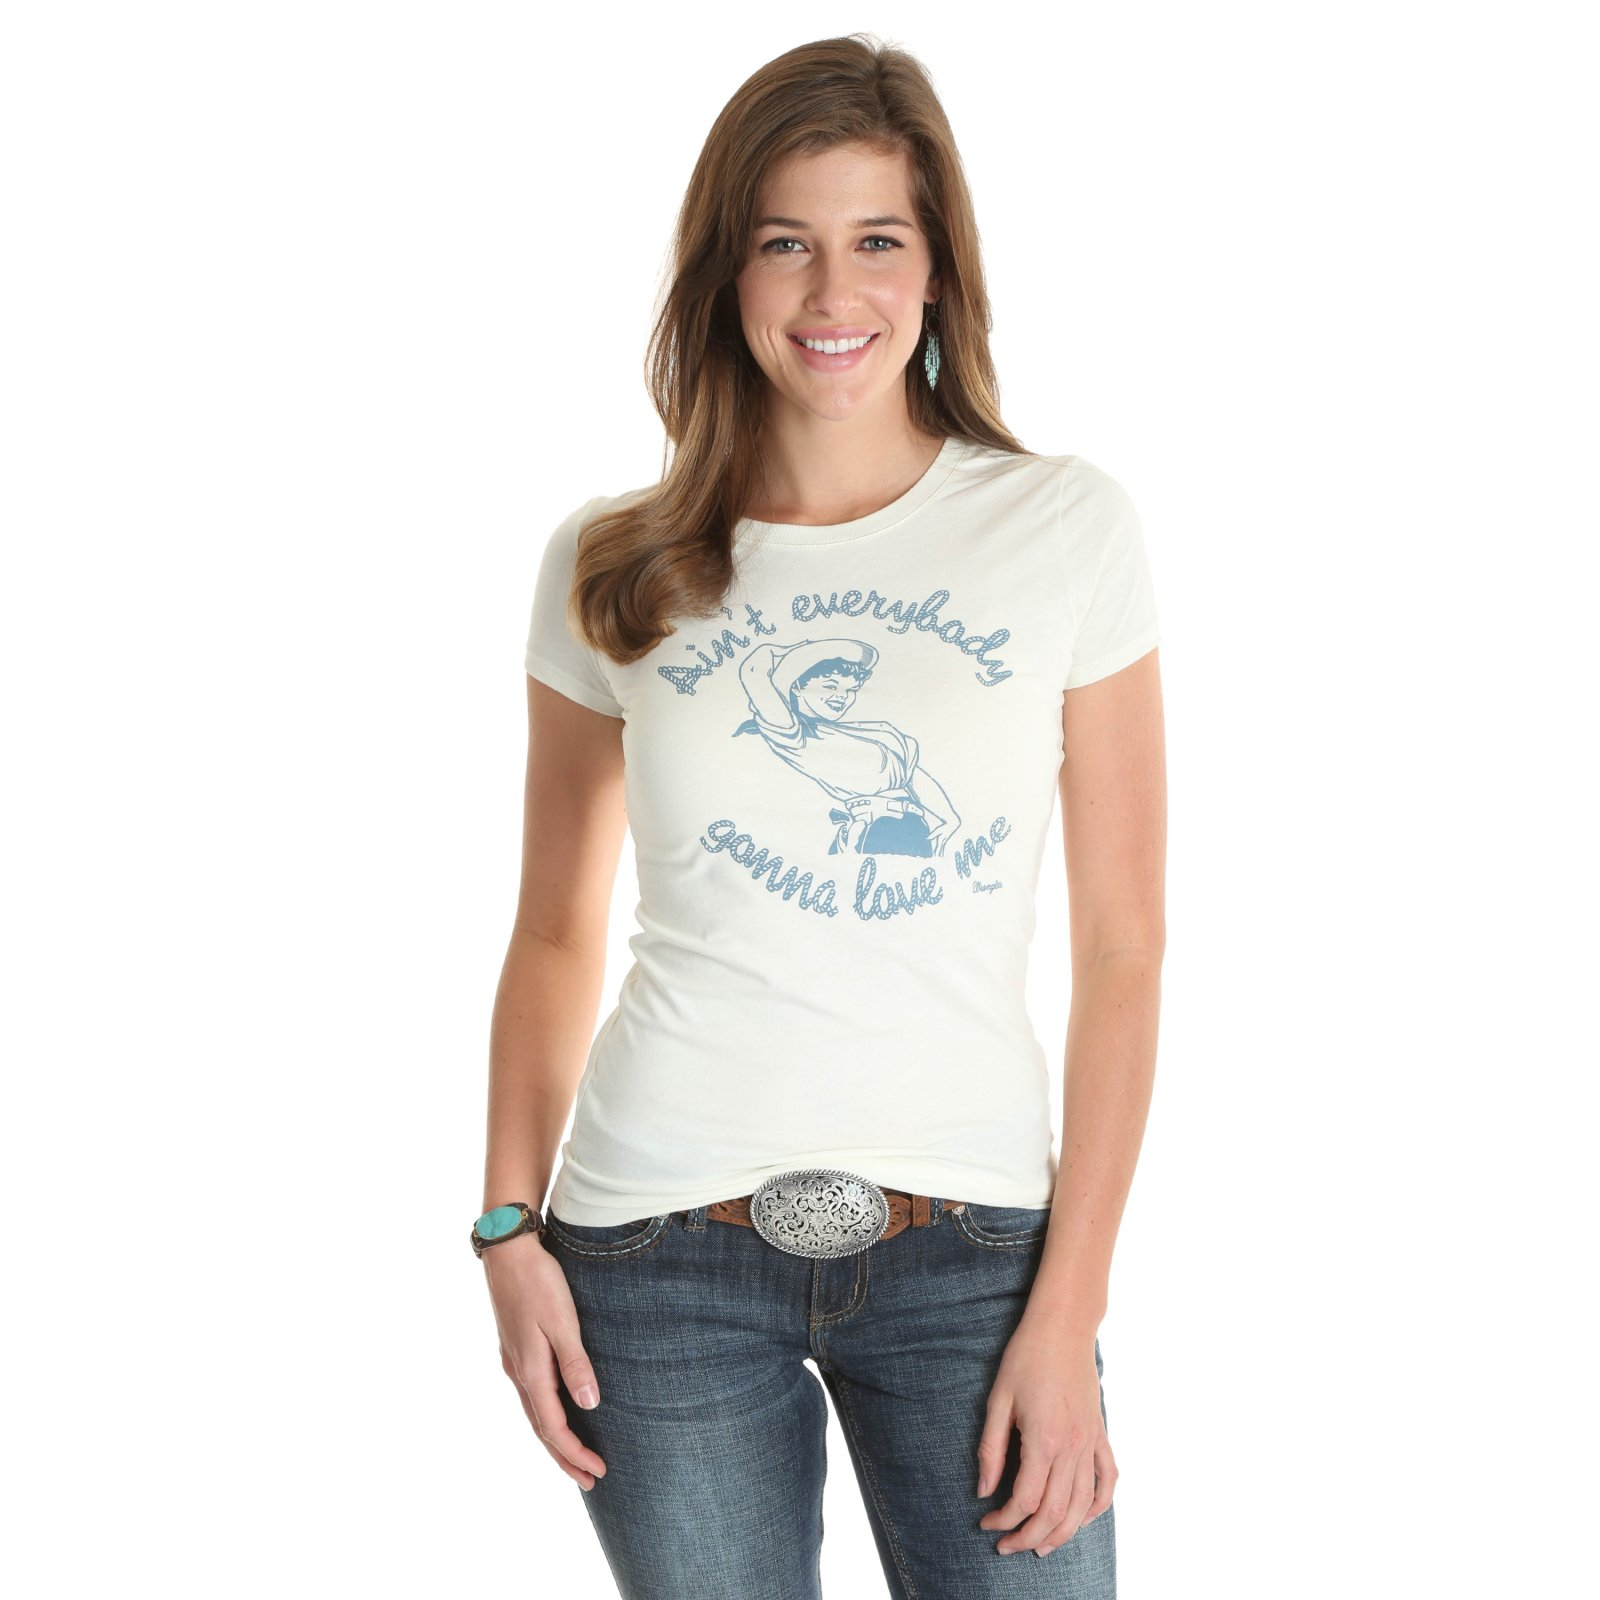 Ain't Everybody Gonna Love Me Graphic Tee from Wrangler